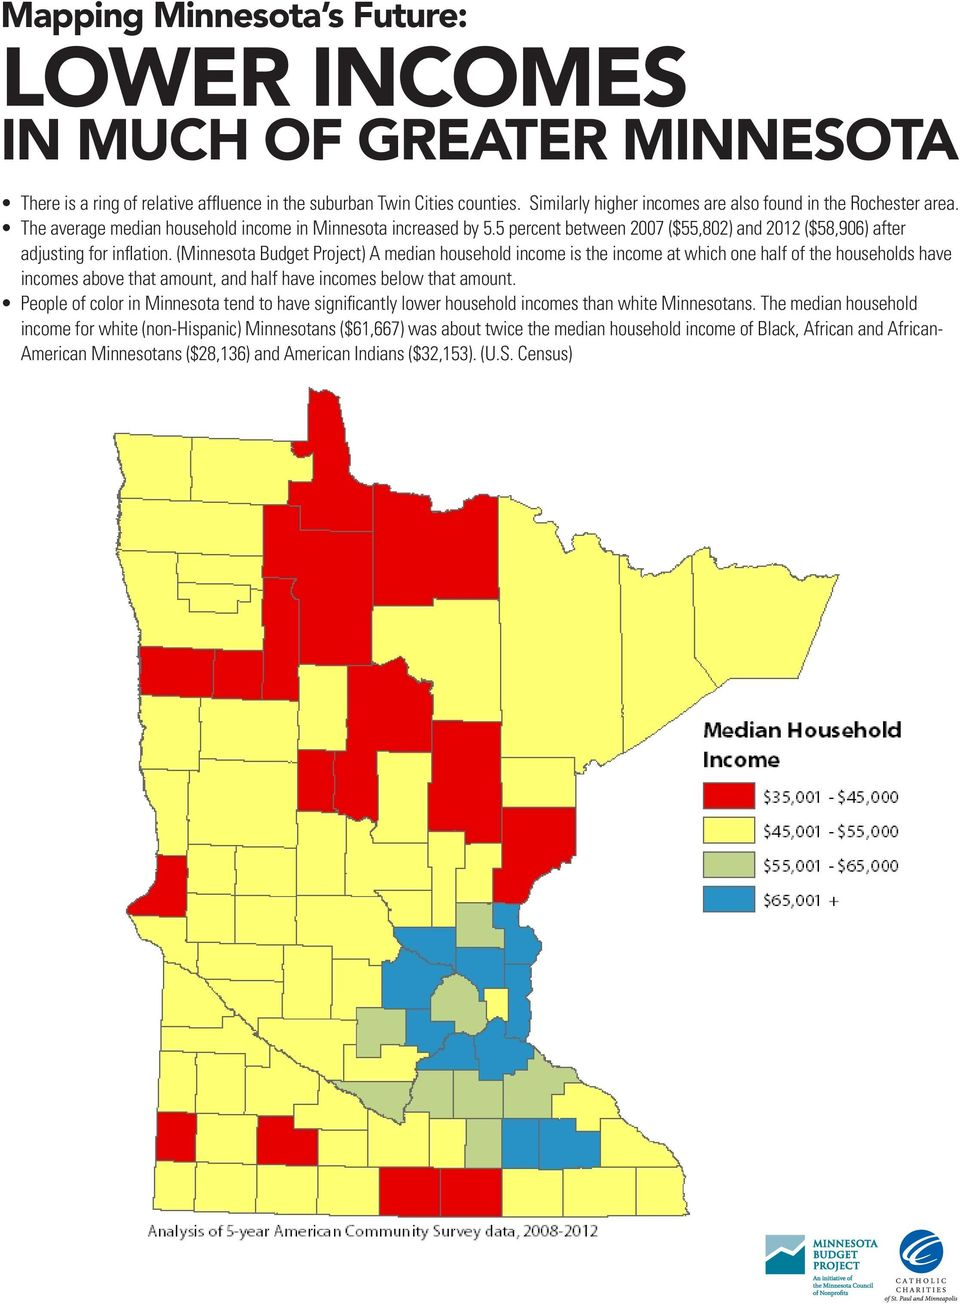 (Minnesota Budget Project) A median household income is the income at which one half of the households have incomes above that amount, and half have incomes below that amount.